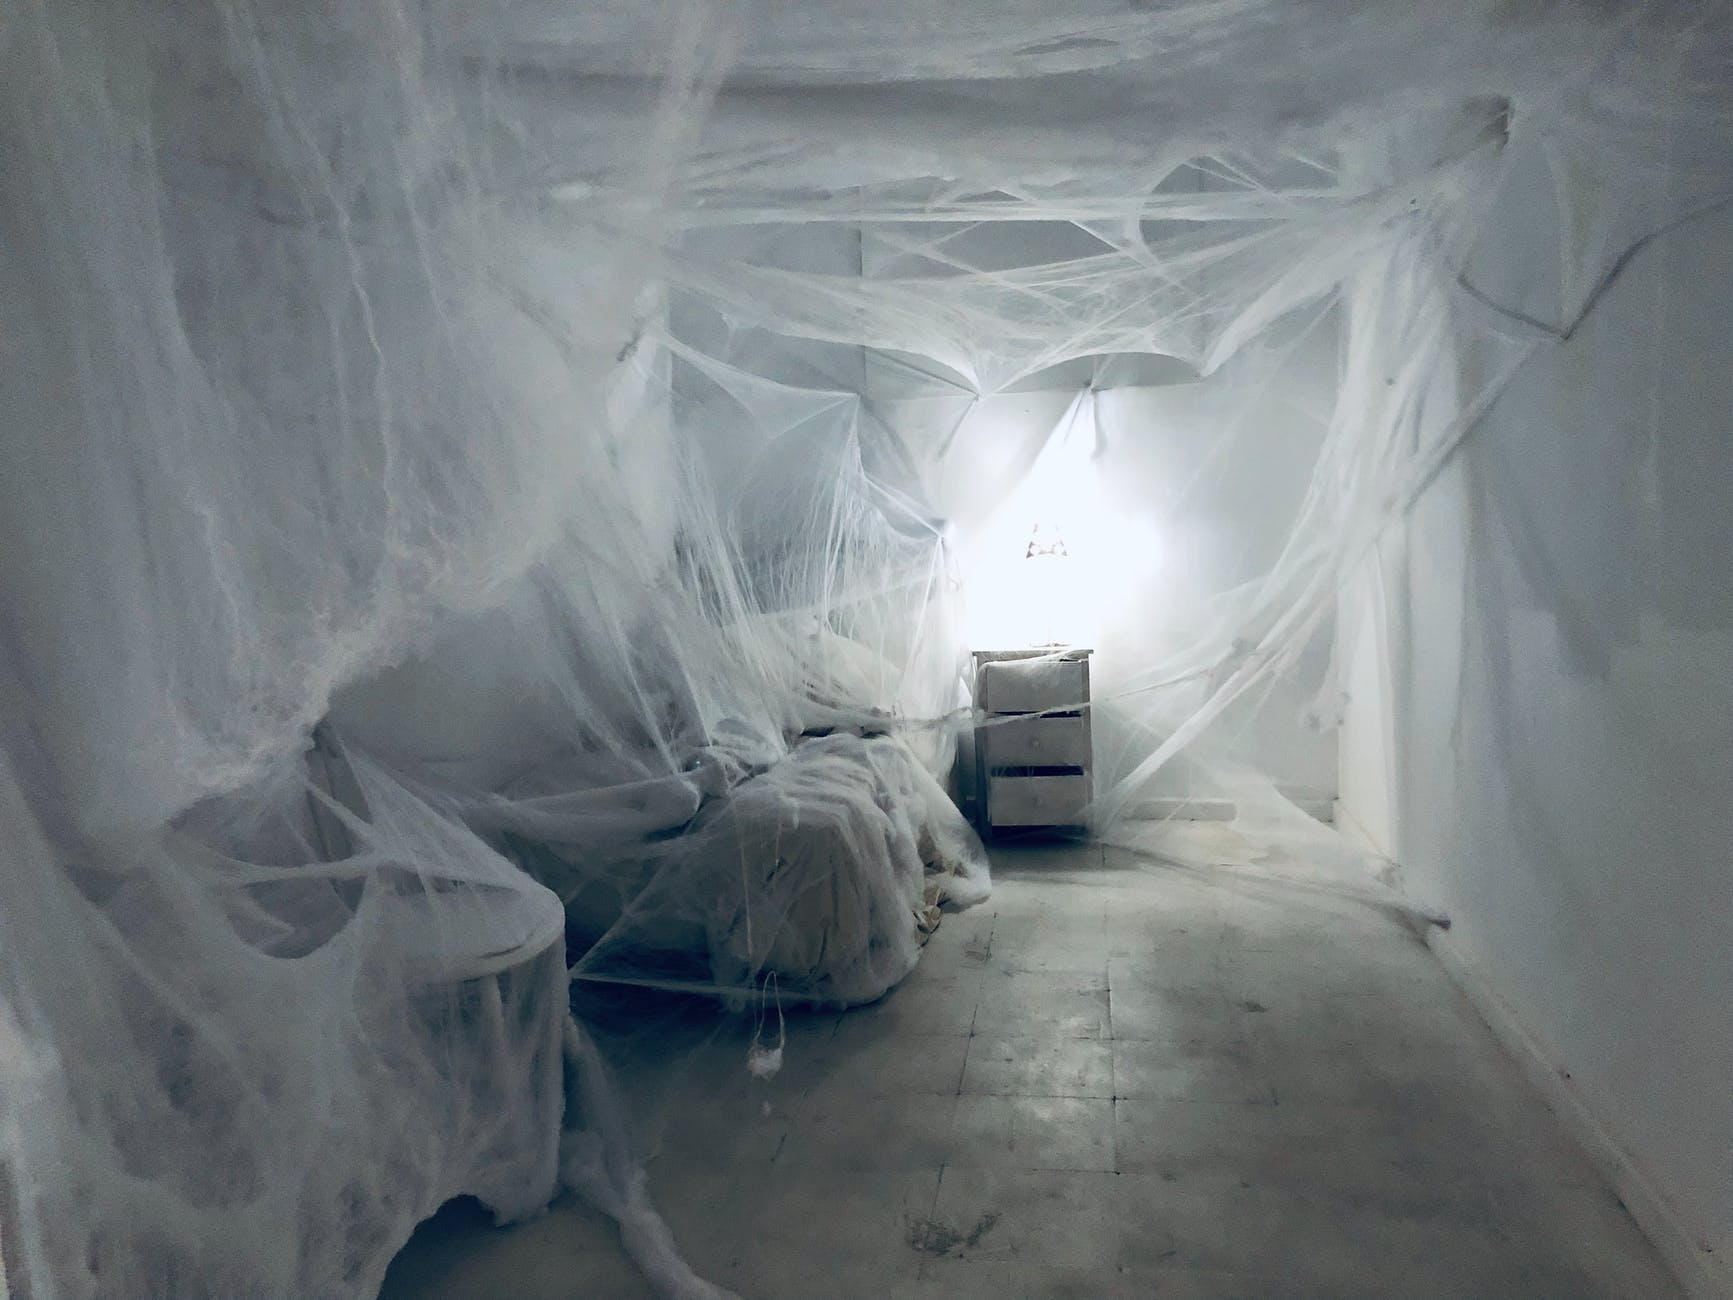 A white room filled with spider webs all around the room.